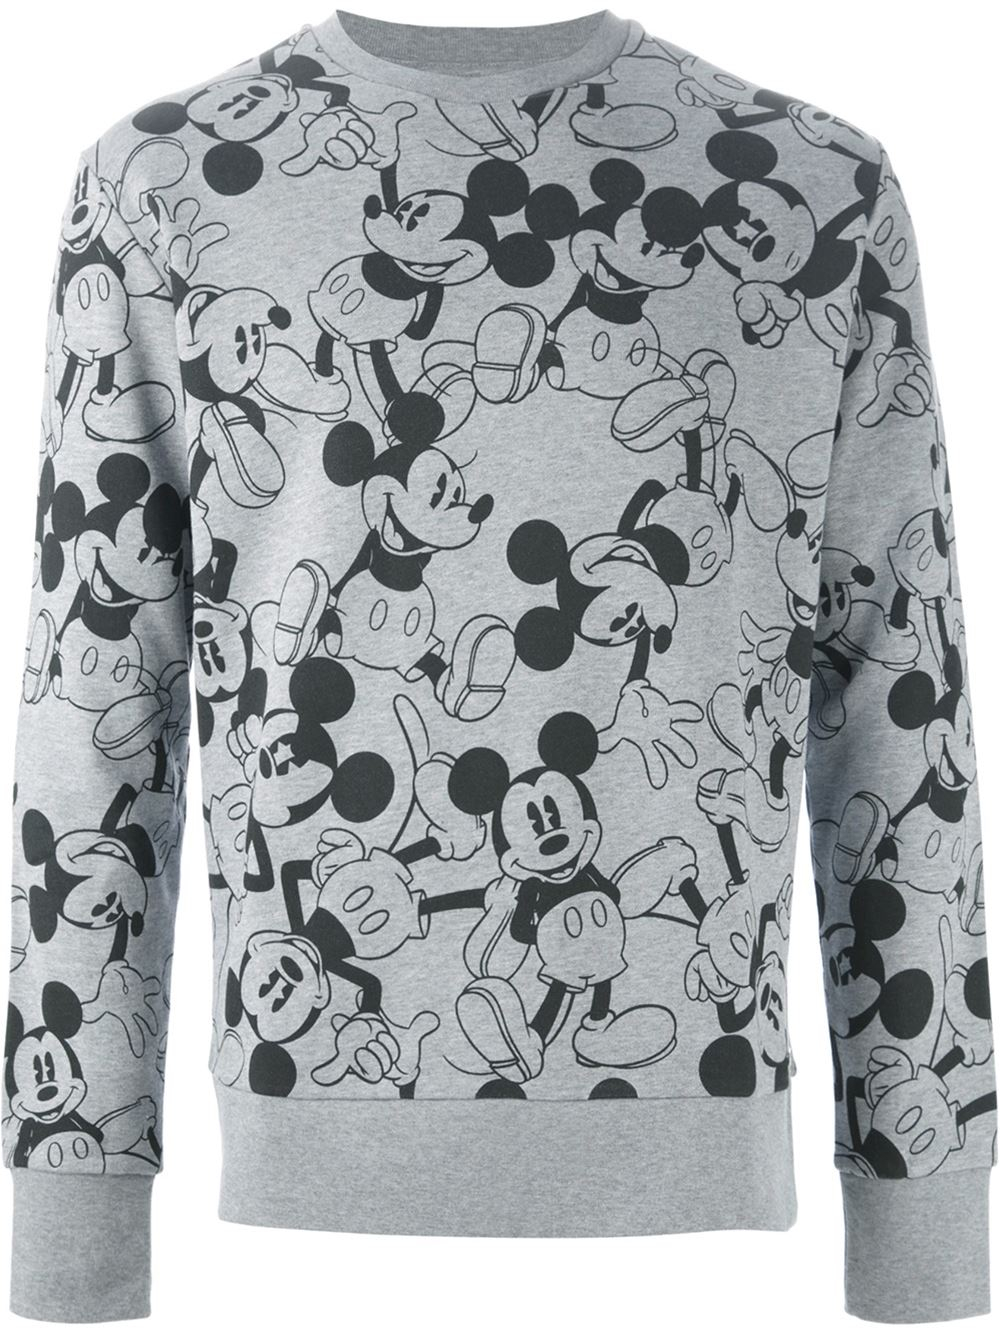 Find great deals on eBay for Mickey Mouse Jumper in Sweats and Hoodies for Women. Shop with confidence. Find great deals on eBay for Mickey Mouse Jumper in Sweats and Hoodies for Women. Ugly Christmas Sweater jumper Women Men XL Mickey Mouse Minnie Sweatshirt CS $ Buy It Now. Features Mickey Mouse and Minnie. We run specials every.